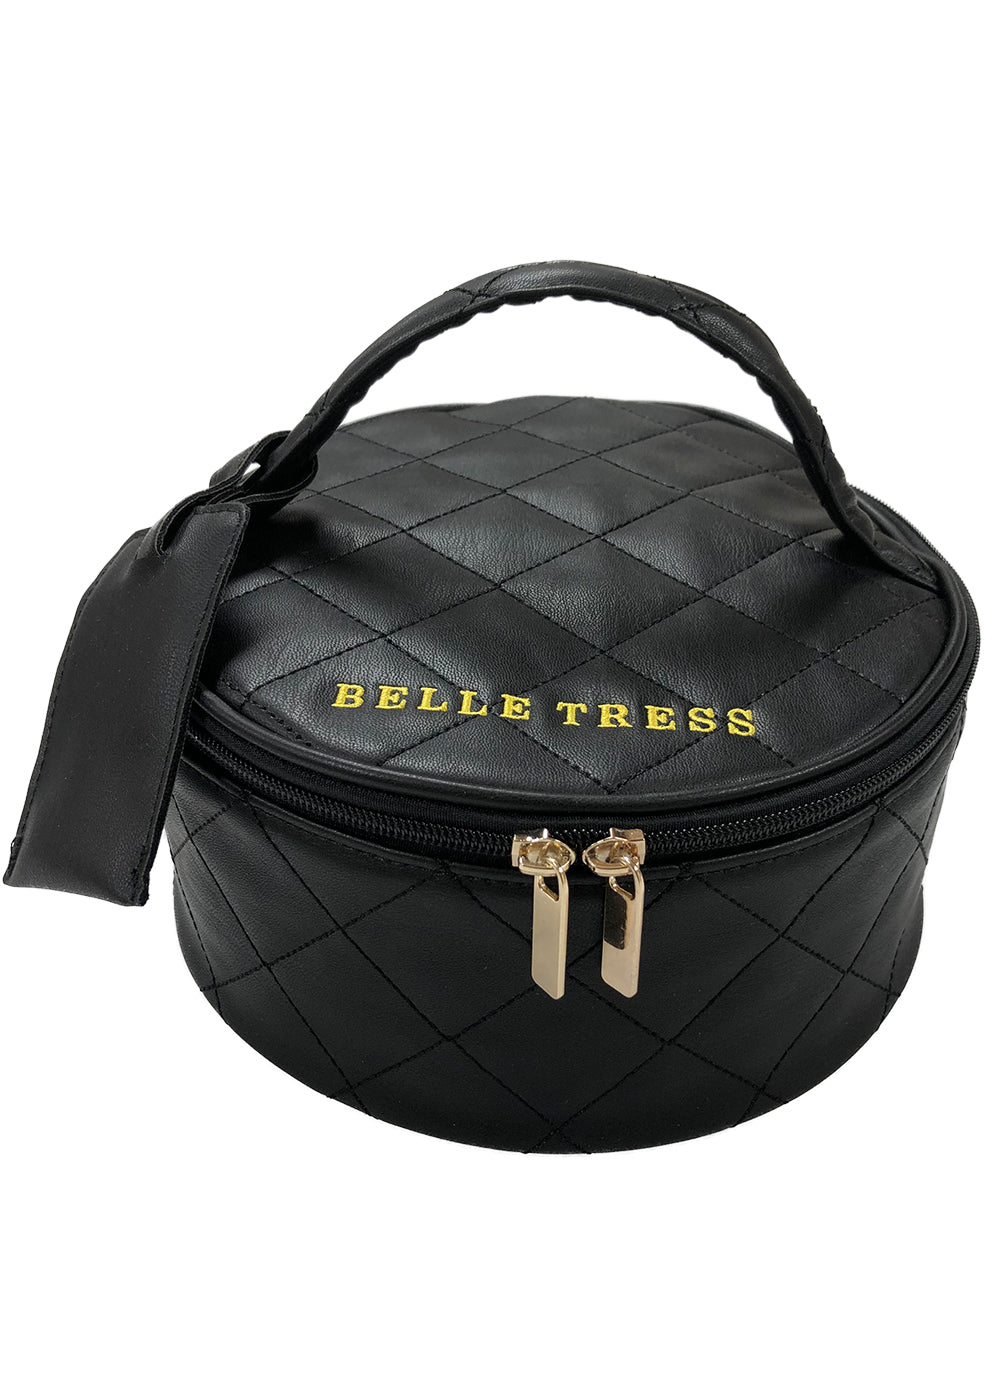 Perfect Wig Travel Case - Belle Tress